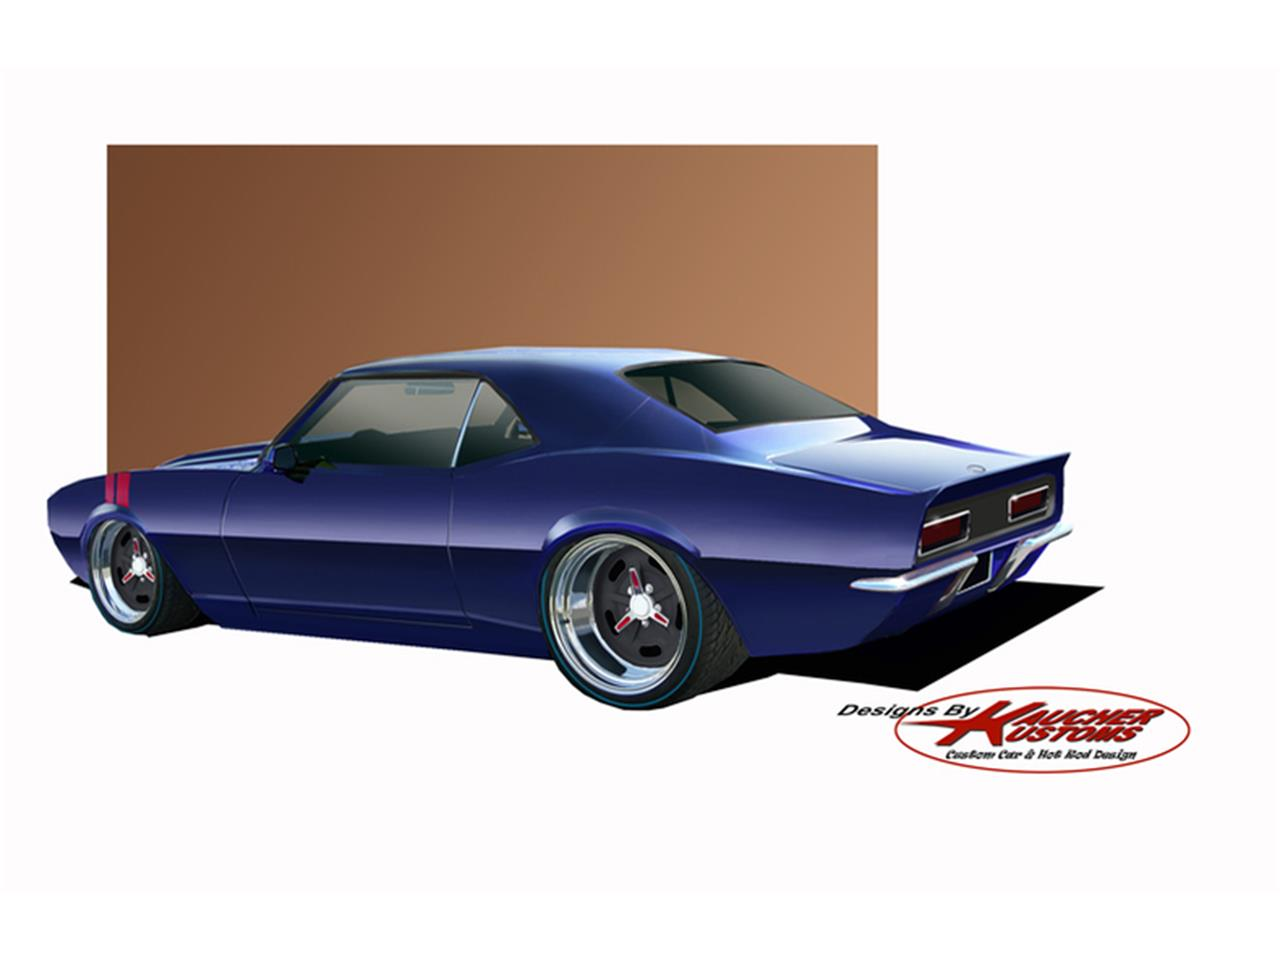 Large Picture of 1968 Chevrolet Camaro located in Charlotte North Carolina - $99,900.00 - K4YJ